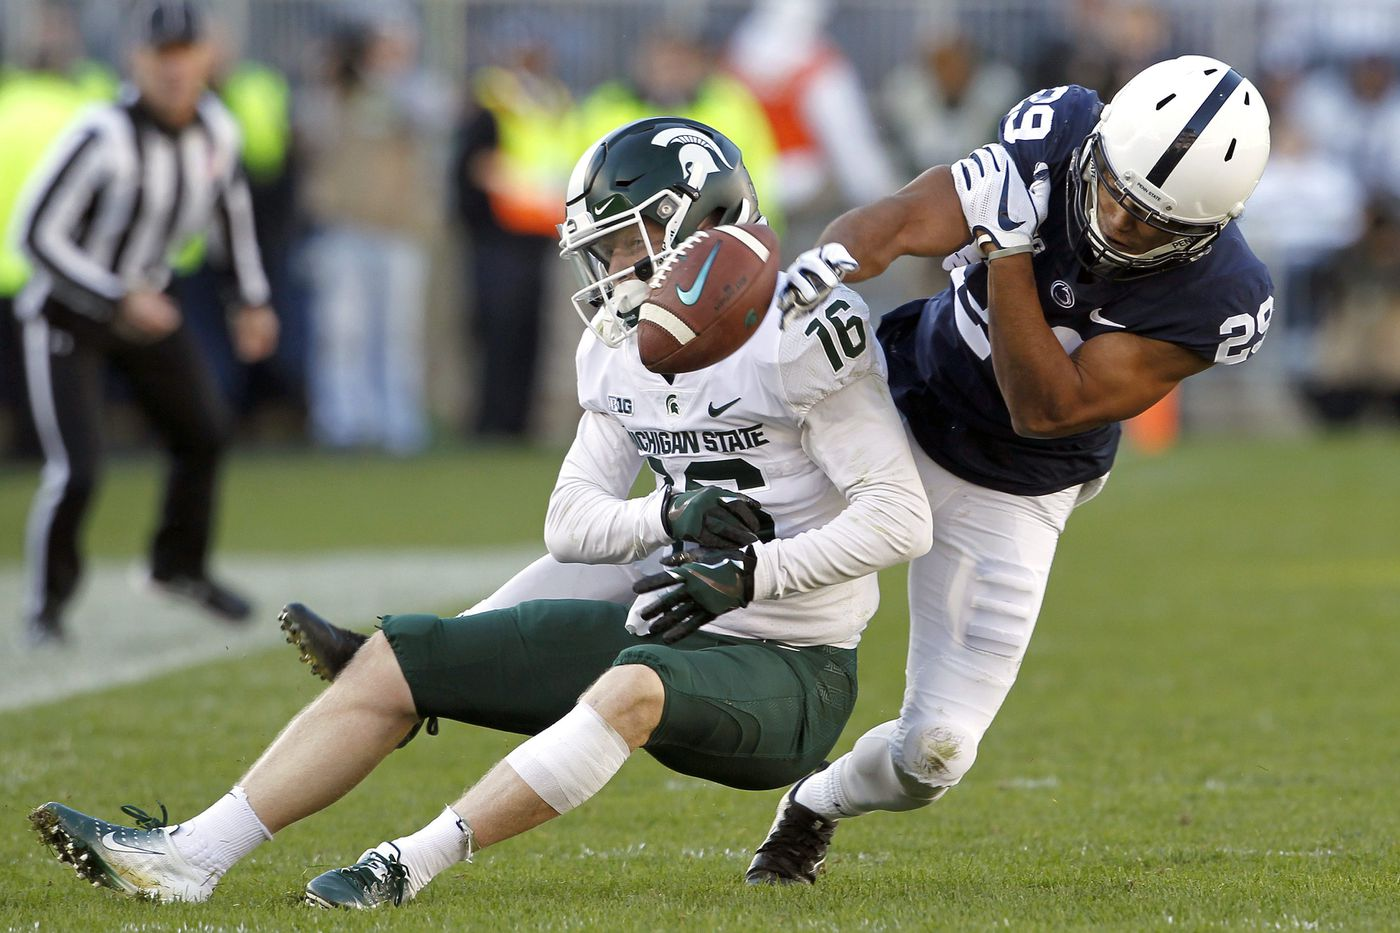 Penn State stunned by Michigan State's late touchdown for second straight loss